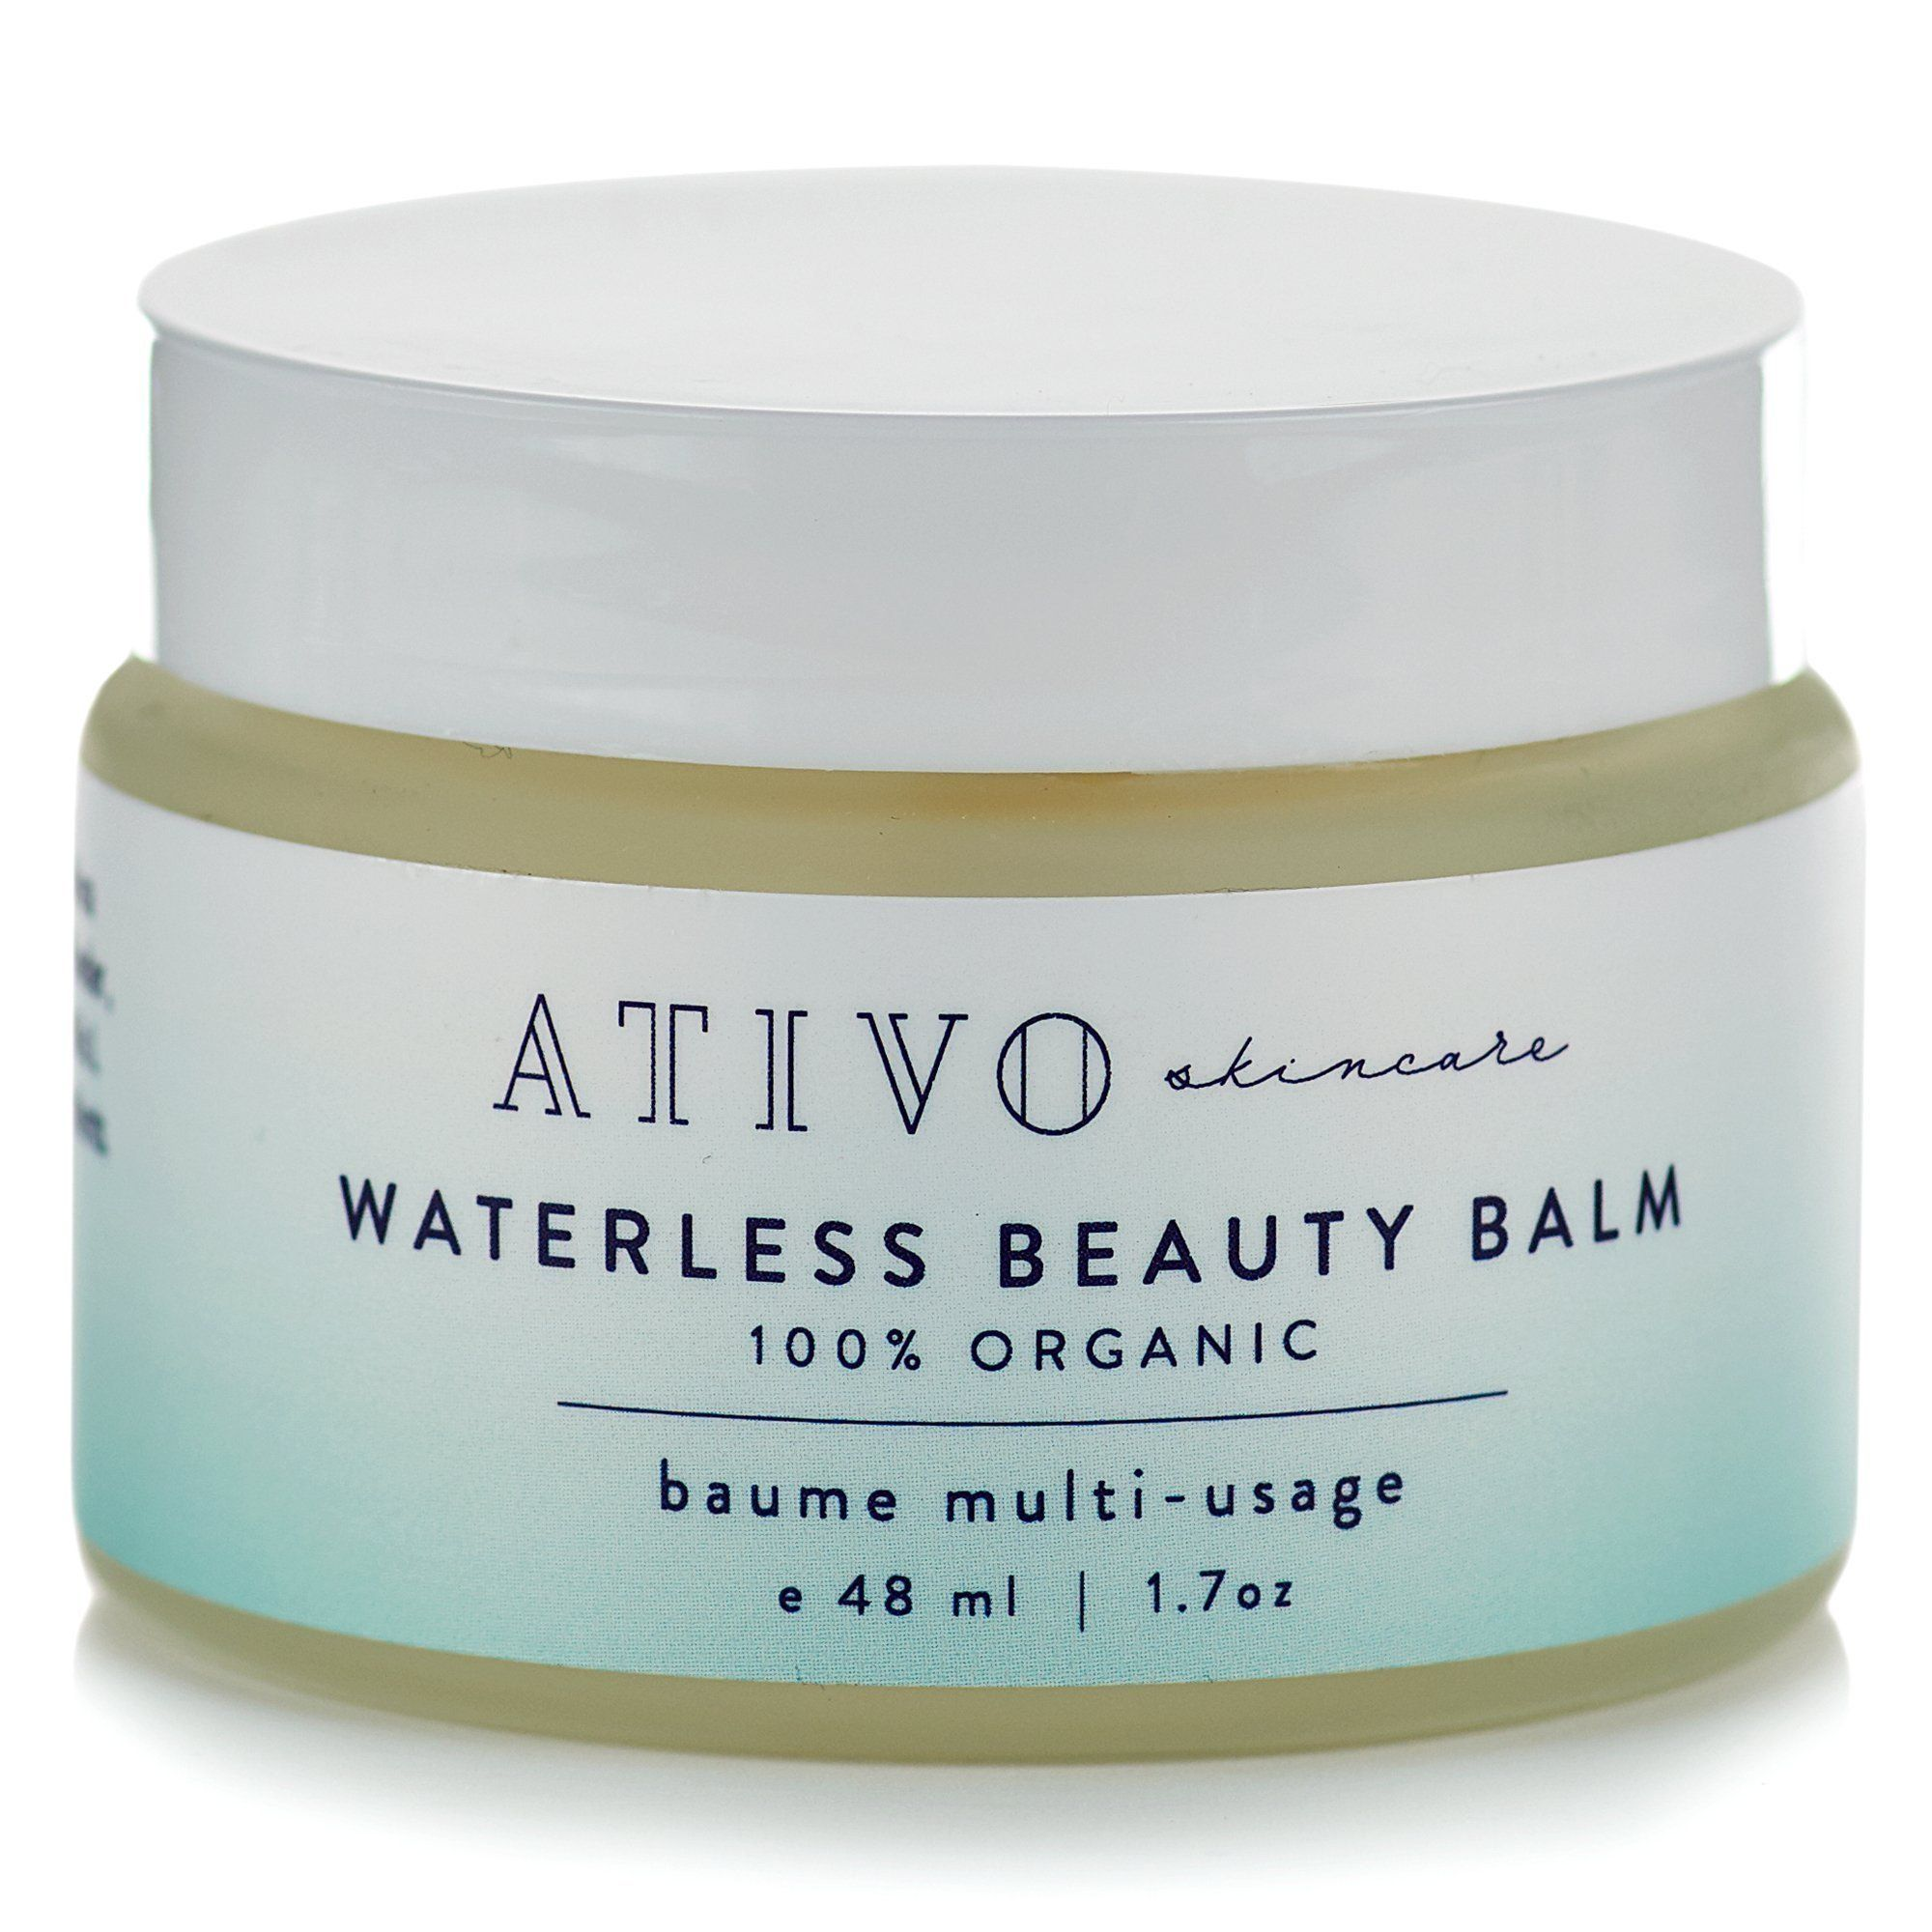 Waterless Beauty Balm